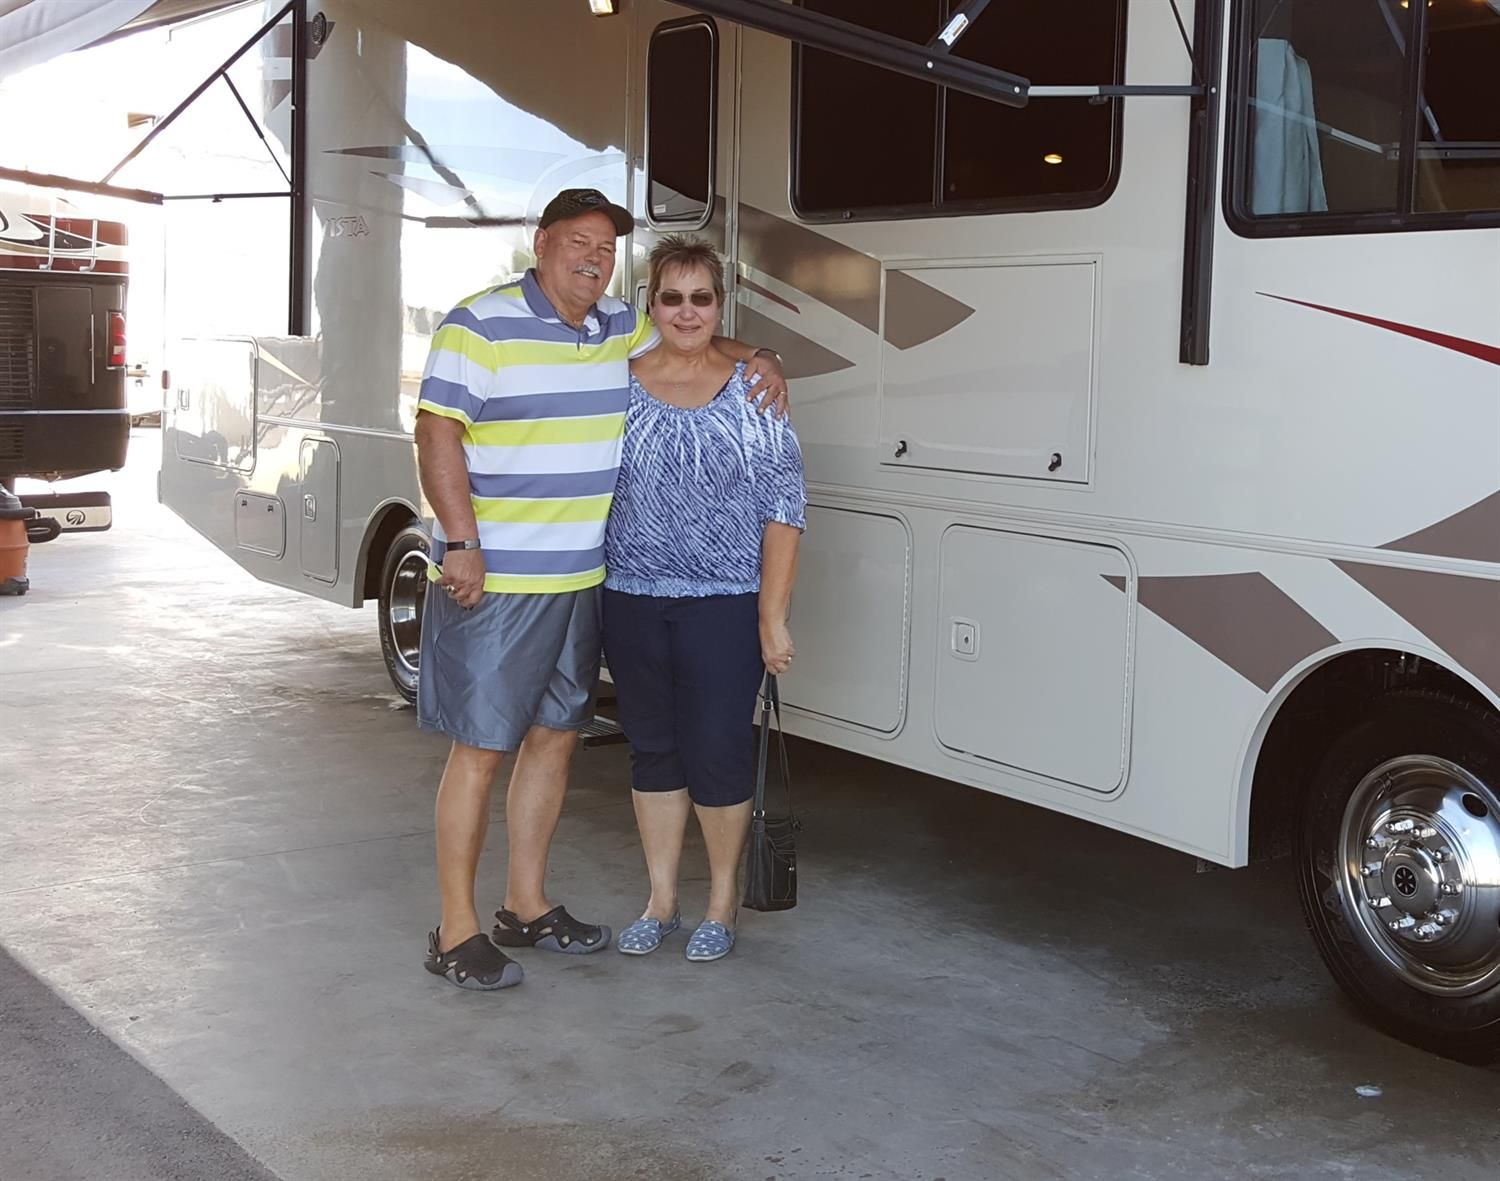 GLENN AND LESLIE's new 2016 WINNEBAGO VISTA 31BE! Congratulations and best wishes from Affinity RV and John Watters.